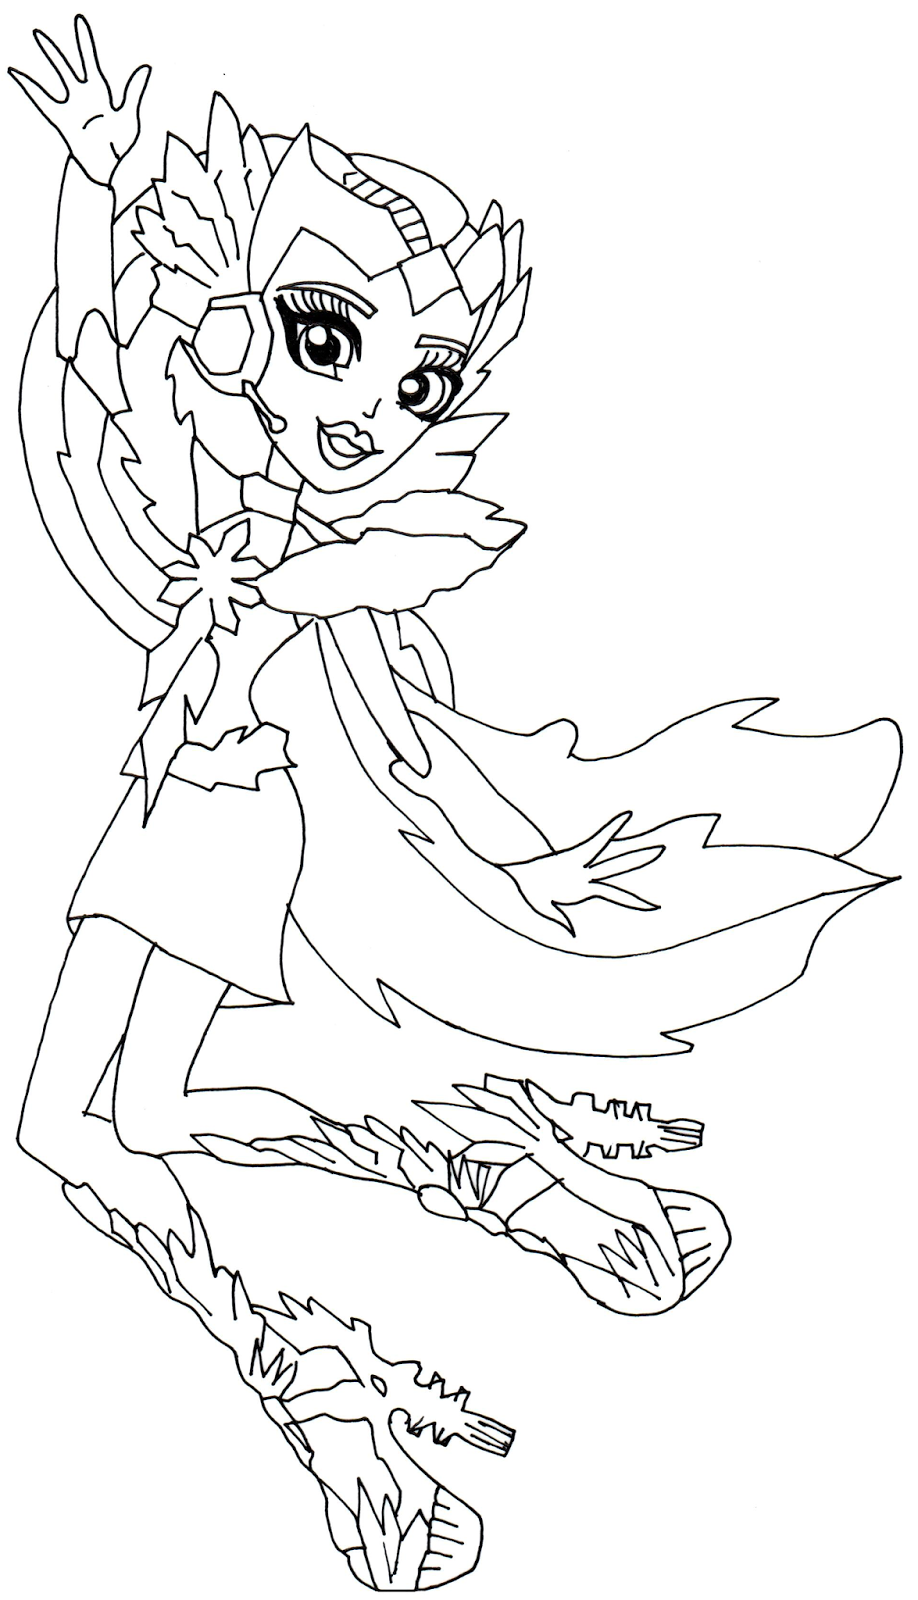 Coloring pages monster high - Astranova Monster High Coloring Page Png 918 1600